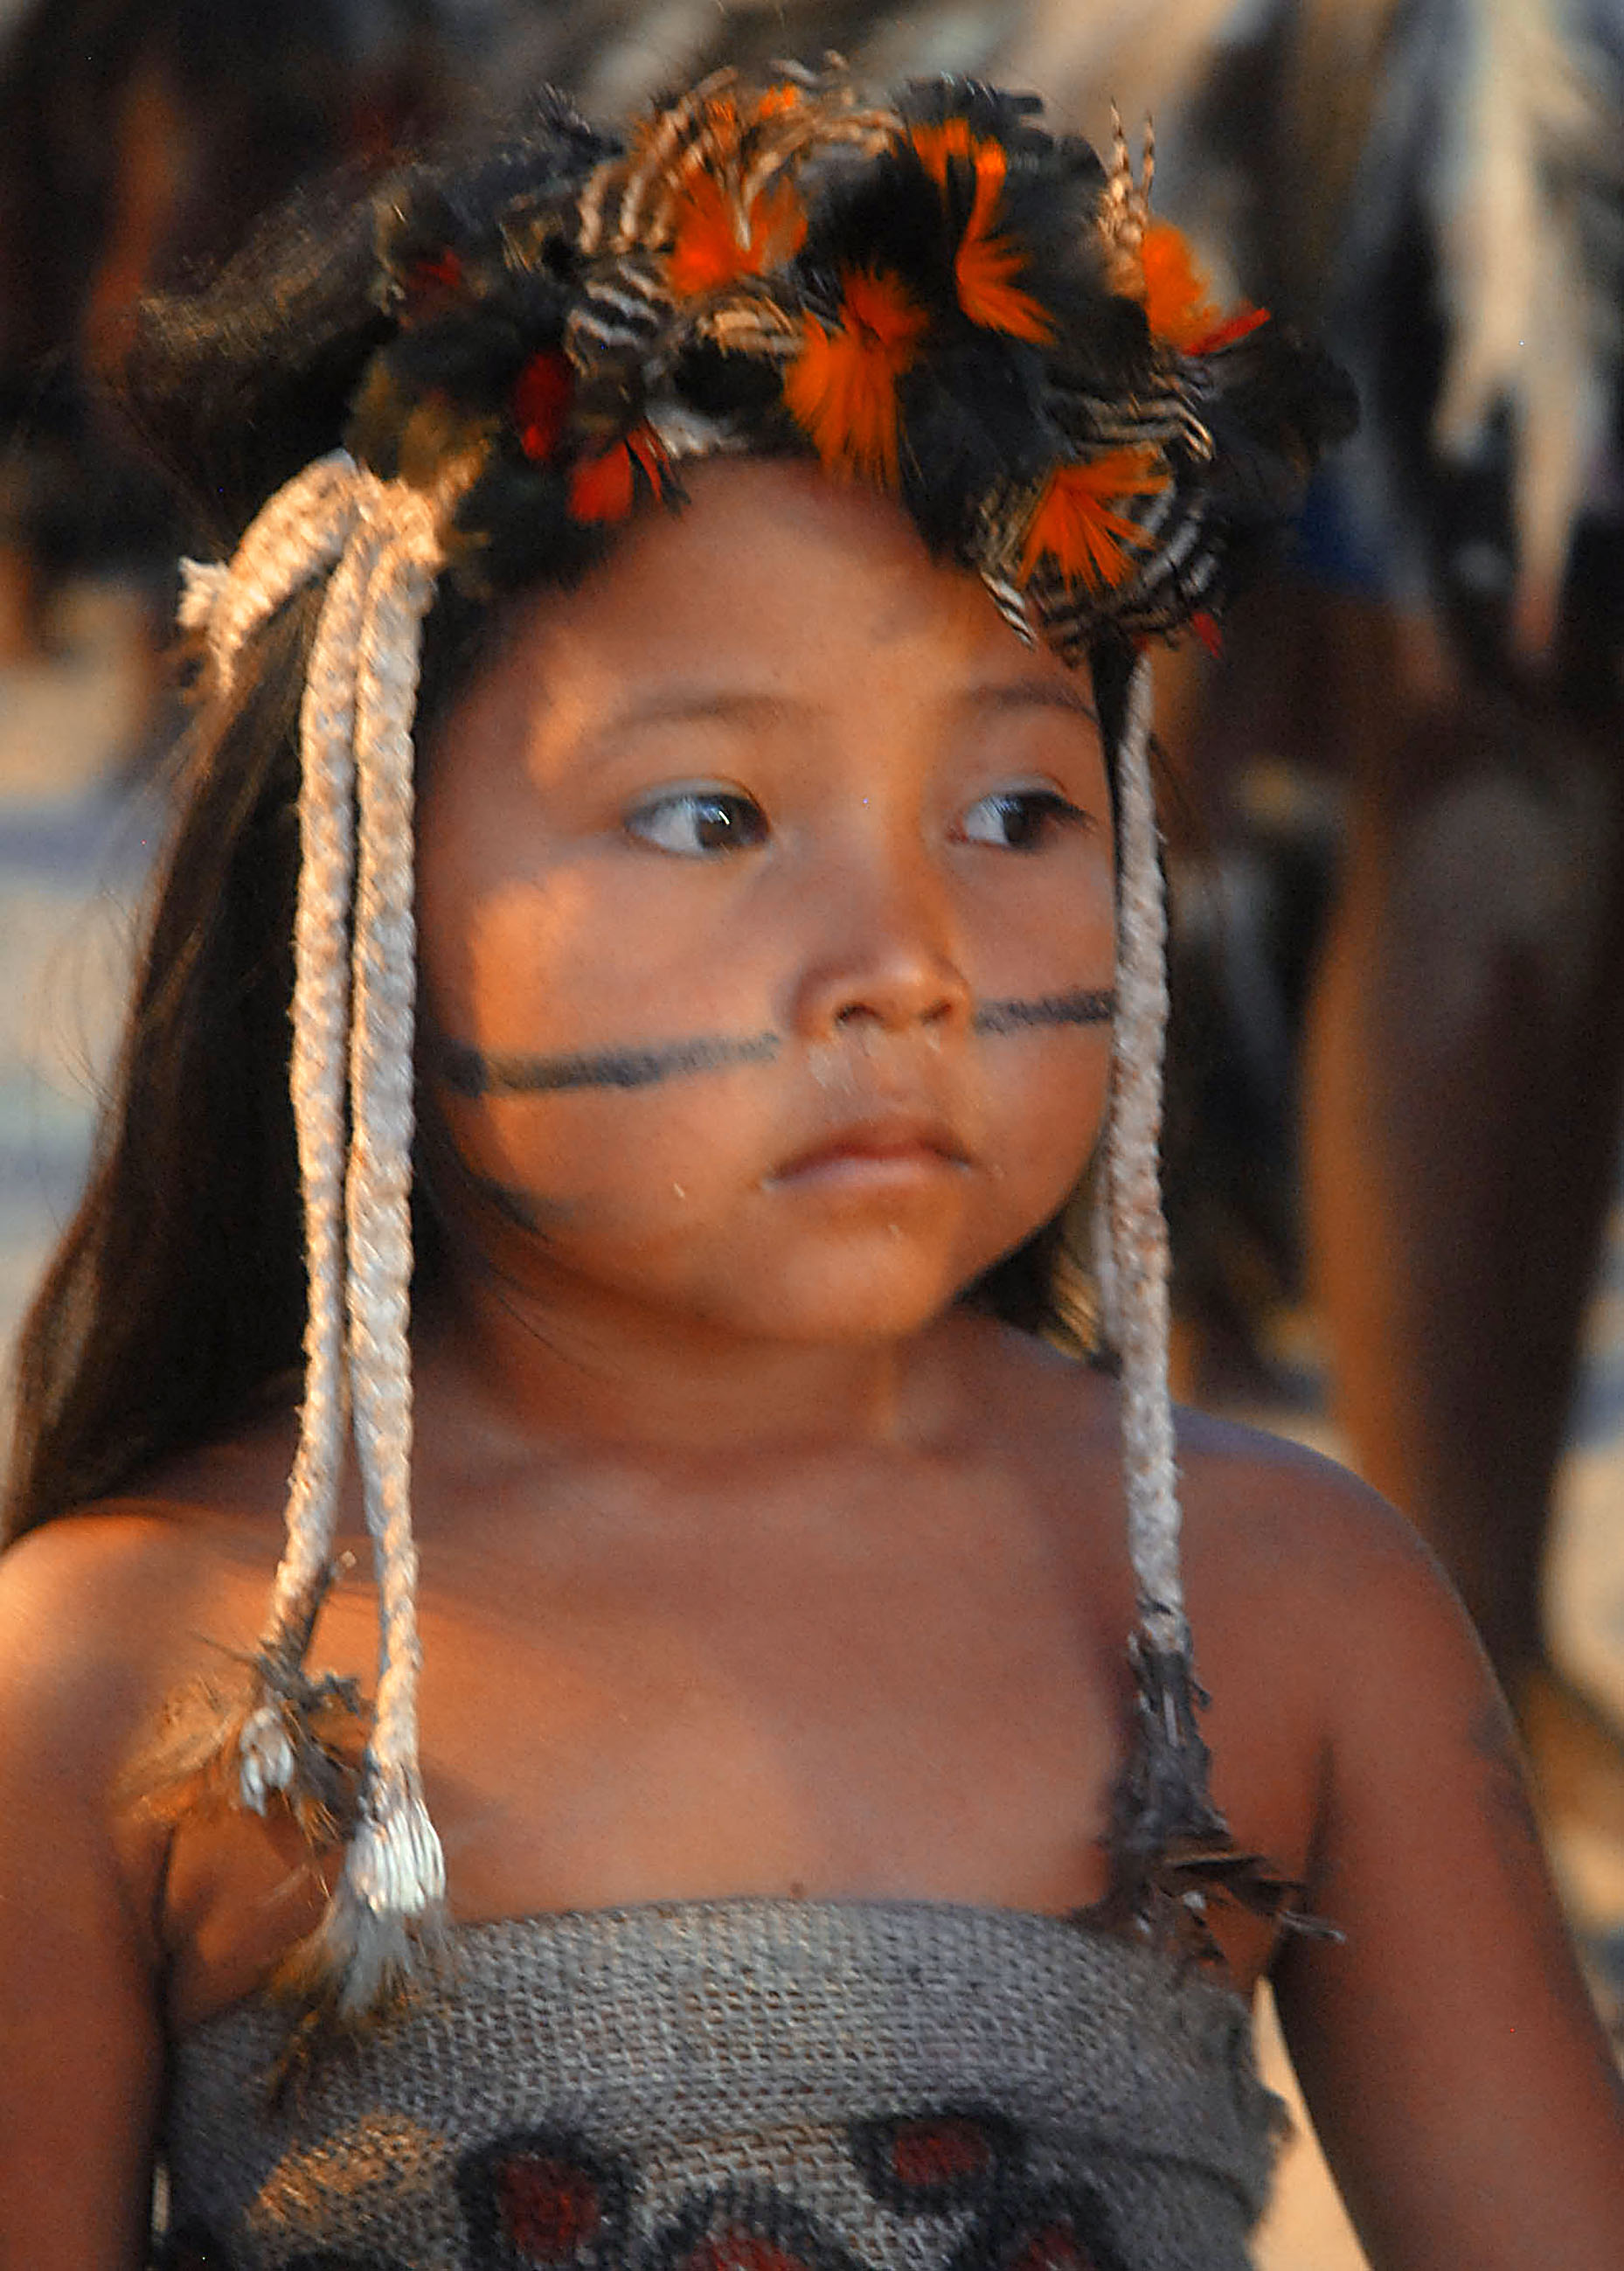 colombia naked indigenous tribes